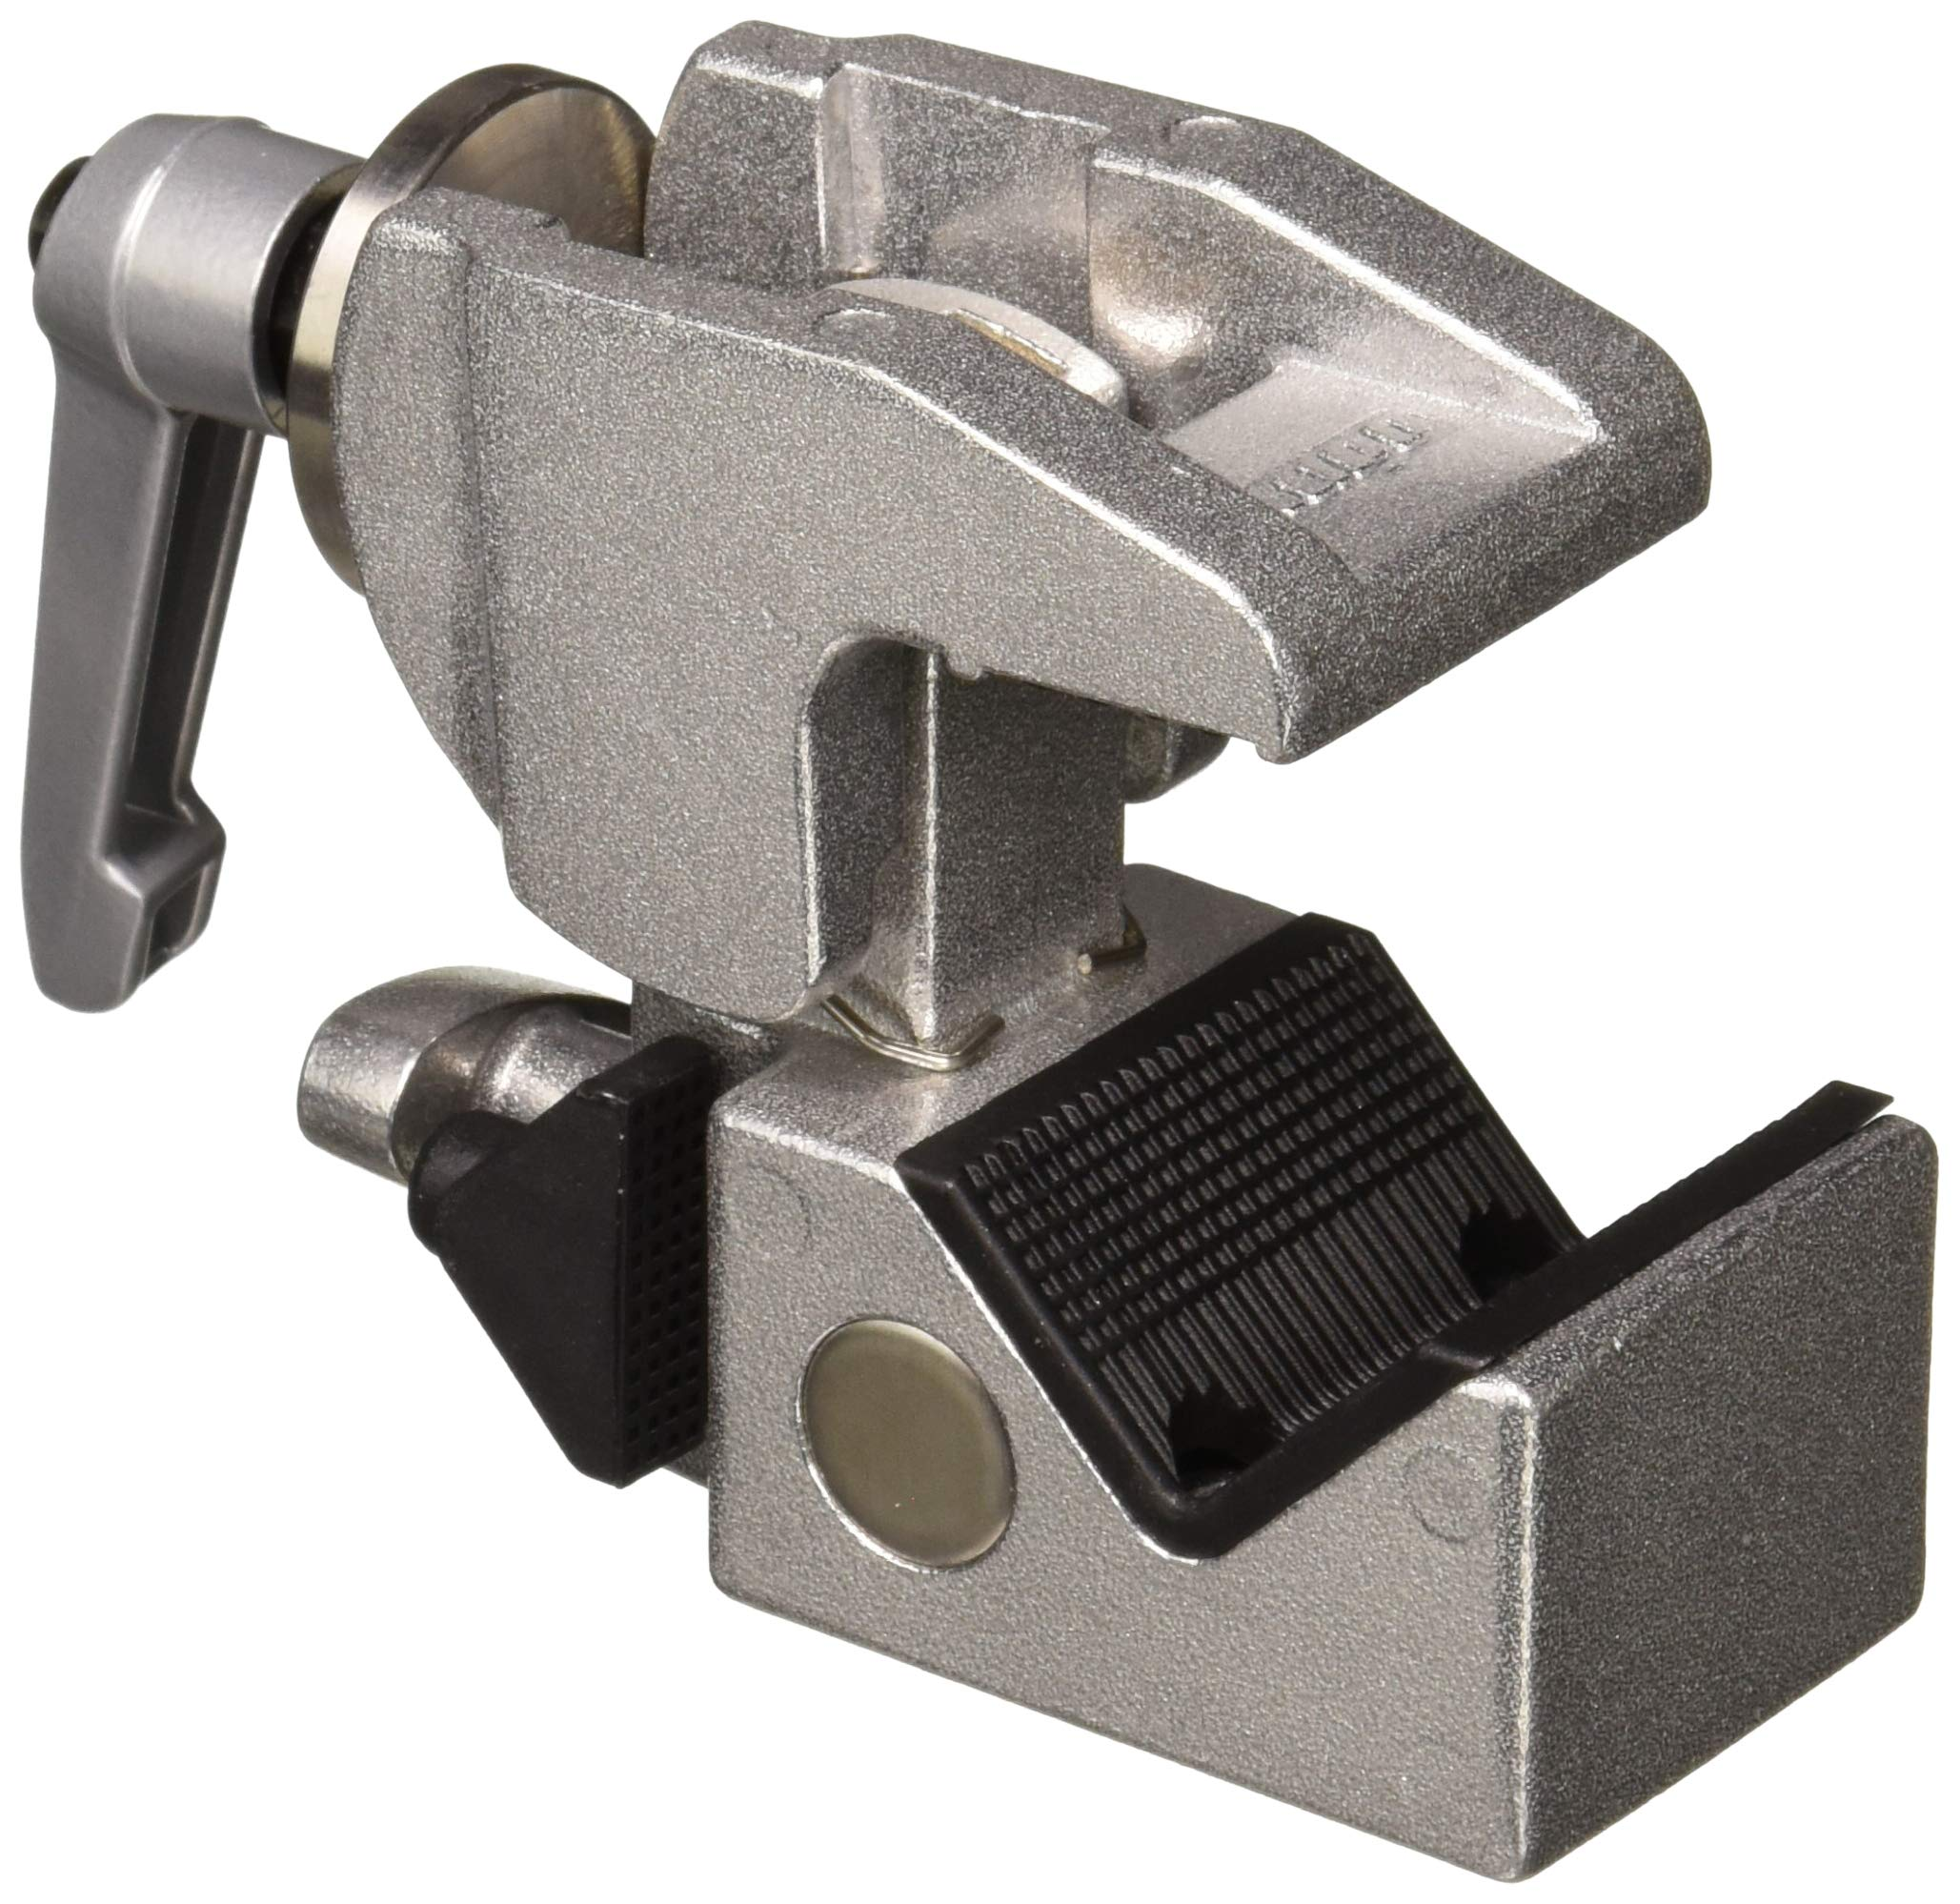 Kupo Convi Clamp with Adjustable Handle - Silver (KG701712) by Kupo